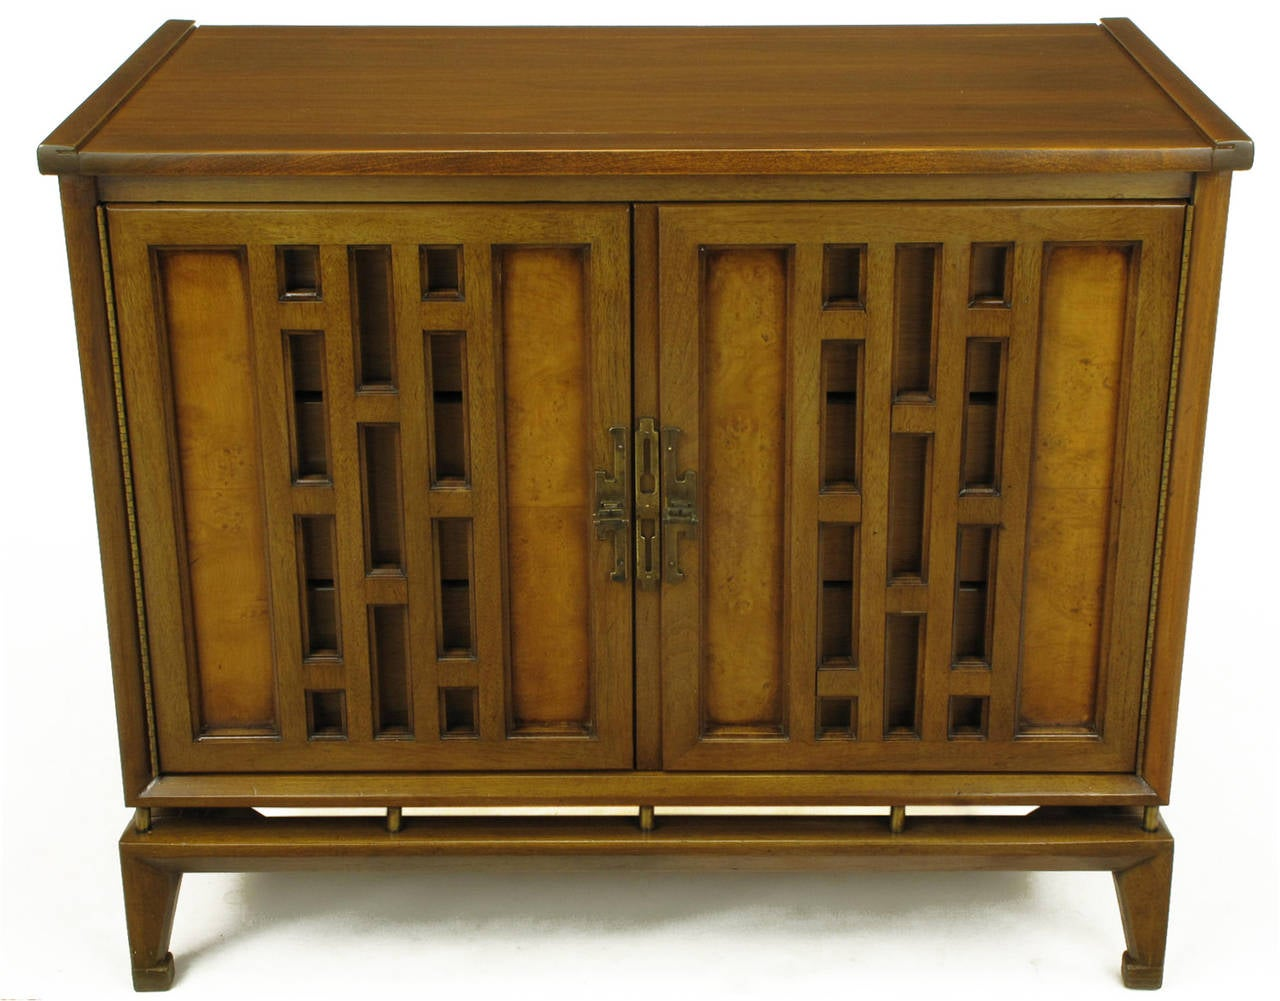 American Pair of Walnut and Burl Walnut Floating Commodes with Open Fretwork Doors For Sale